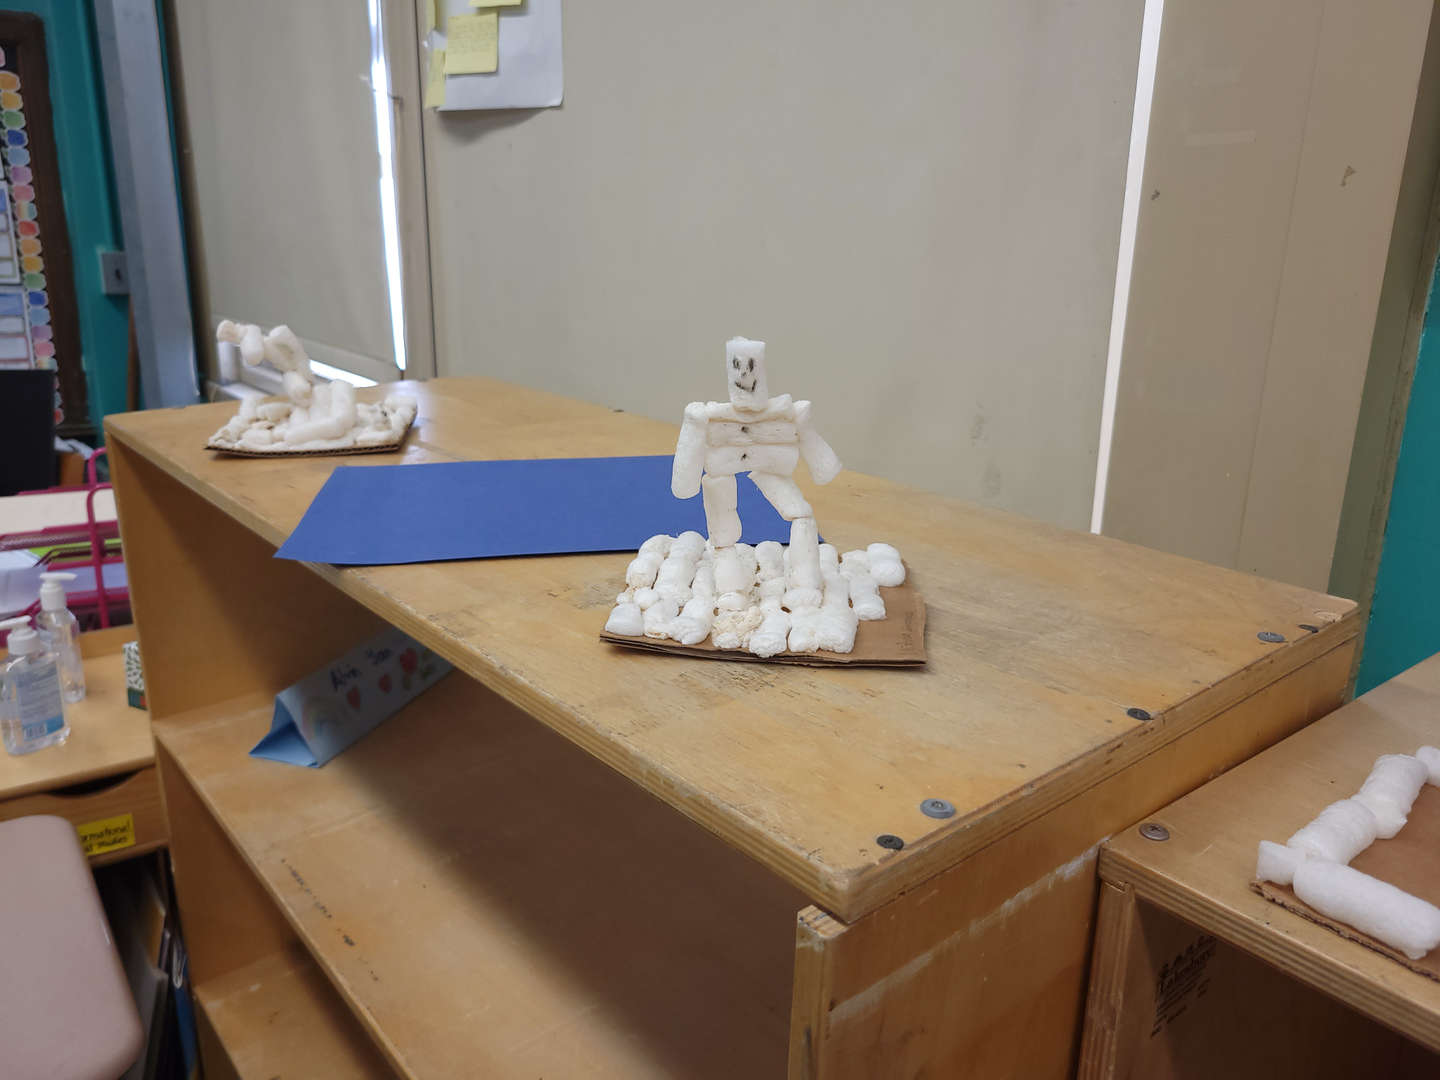 This model is a student creation of a figure of a man made out of cotton balls.